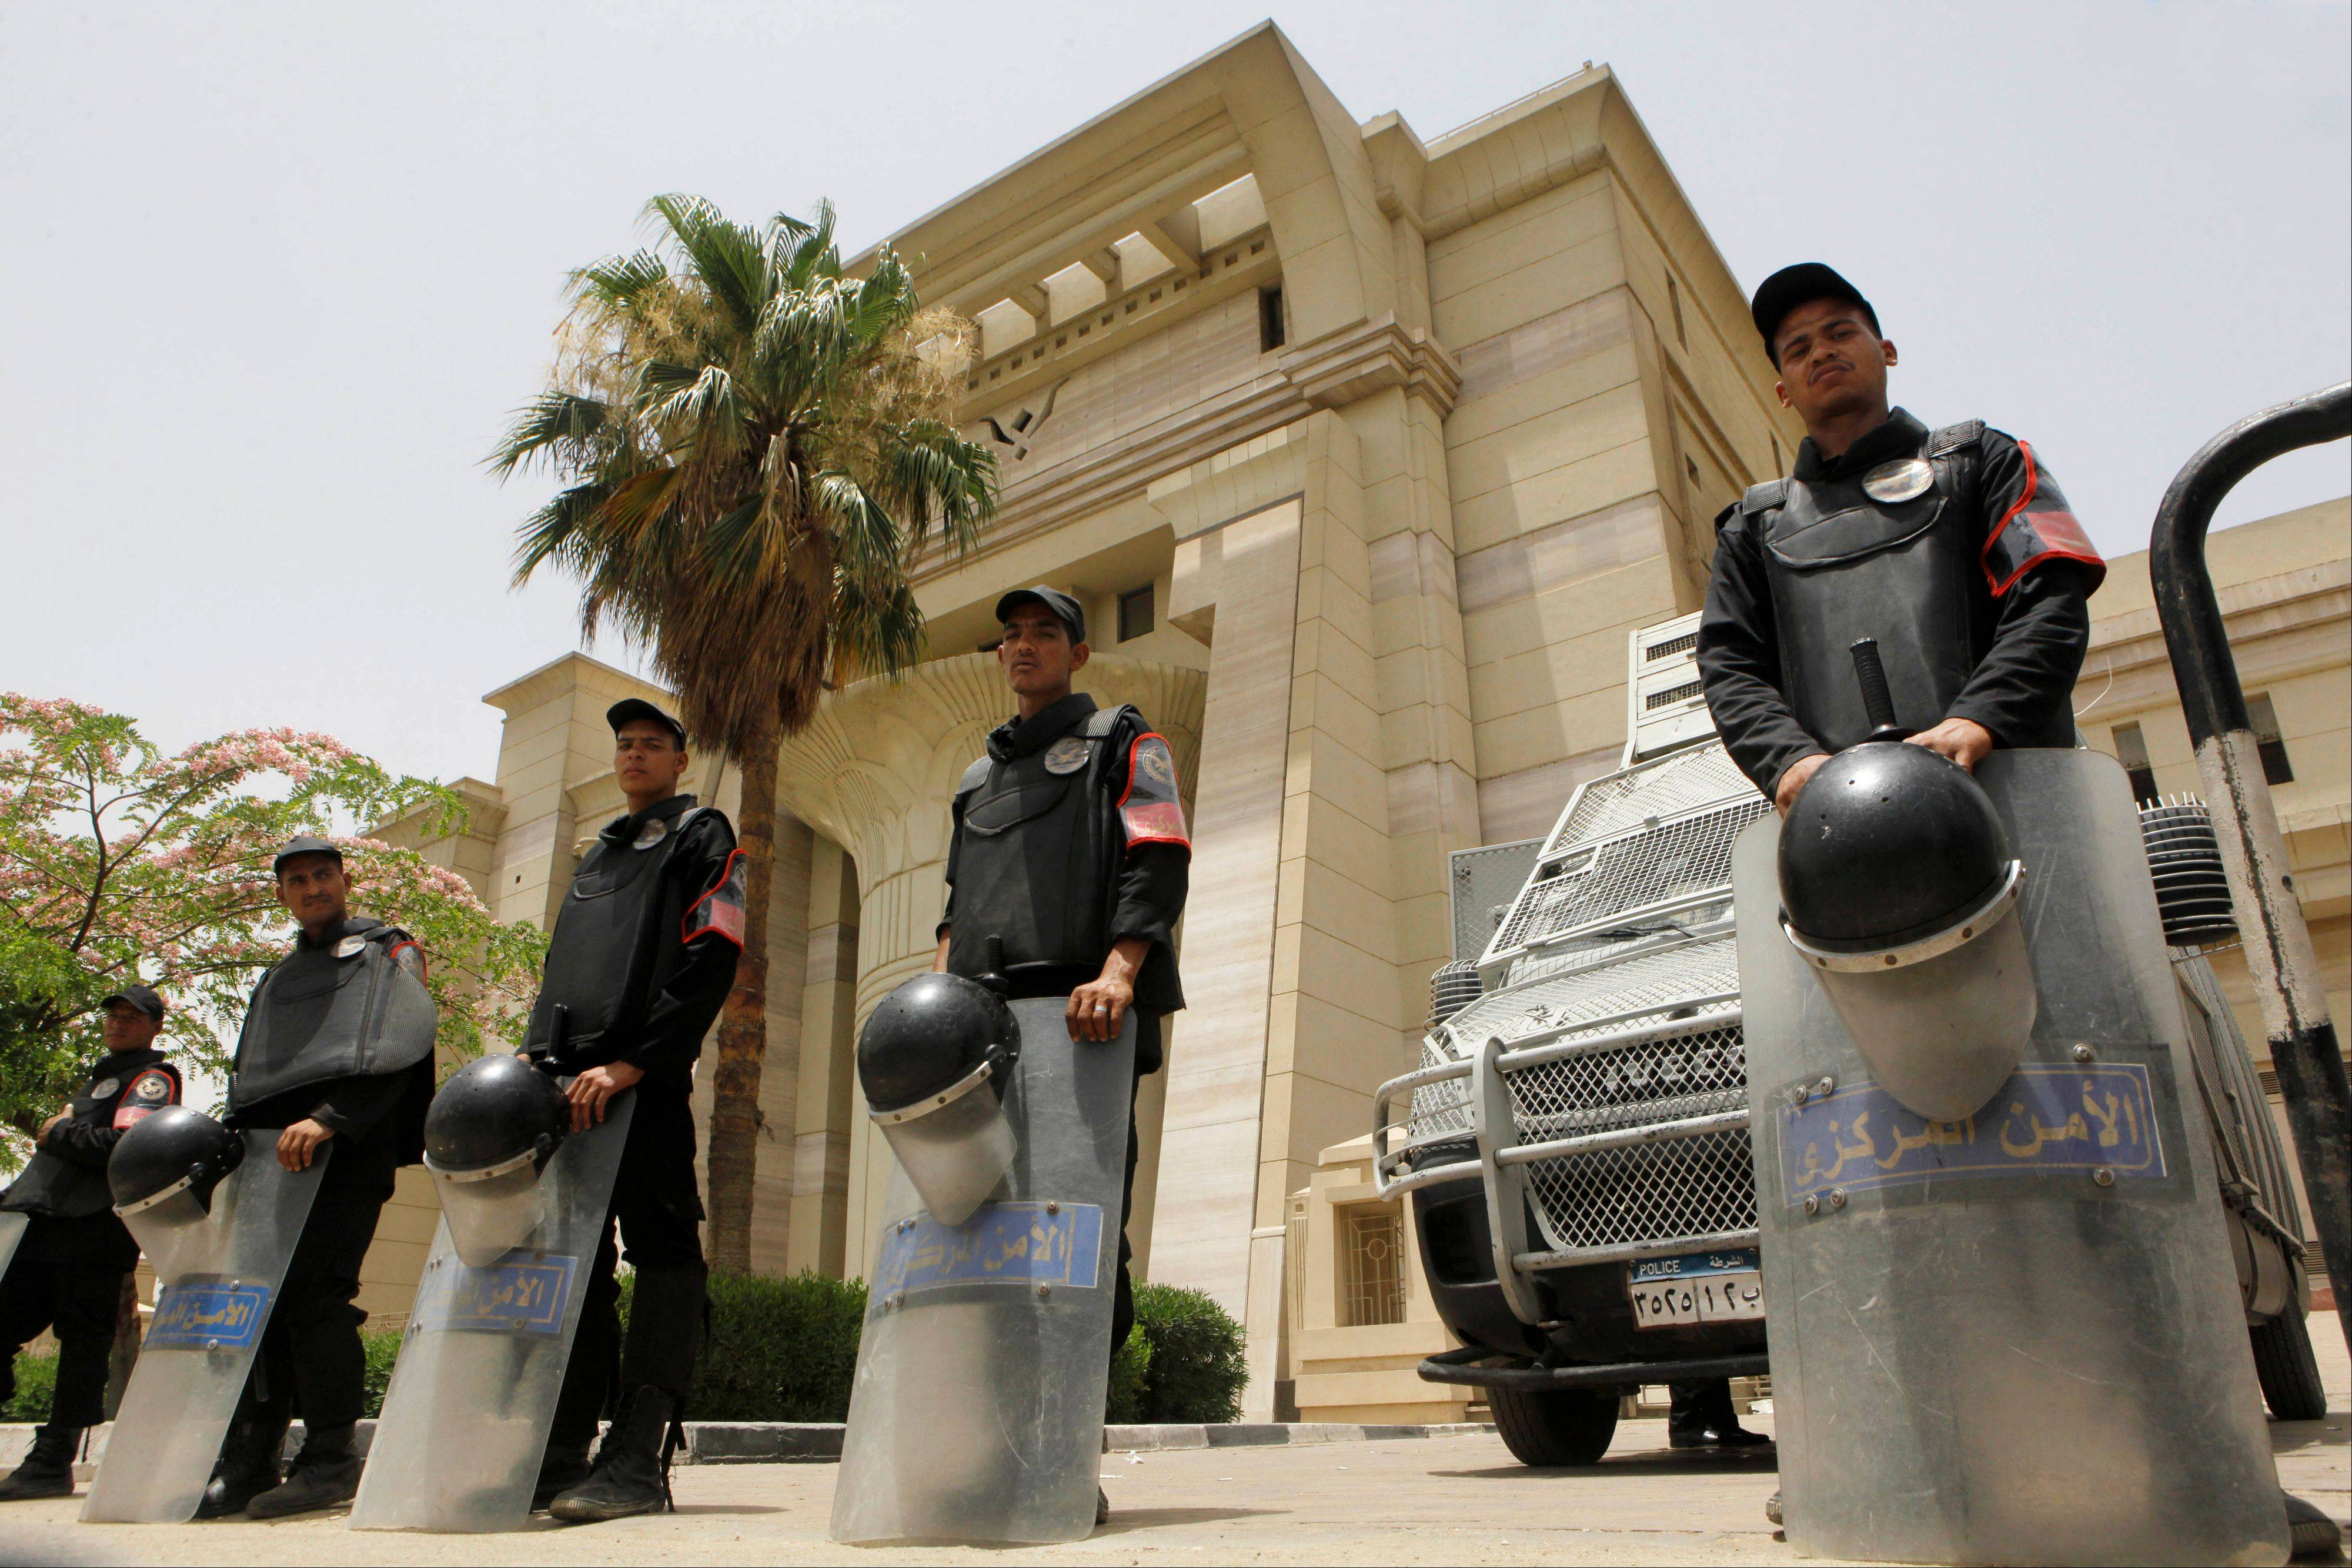 Egyptian anti-riot police stand gurad in front of the Supreme Constitutional Court in Cairo, Egypt, Sunday. An Egyptian court ruled Sunday the nation's Islamist-dominated legislature and constitutional panel were illegally elected and that the legislature's upper house, the only one currently sitting, must be dissolved when parliament's lower chamber is elected later this year or early in 2014.